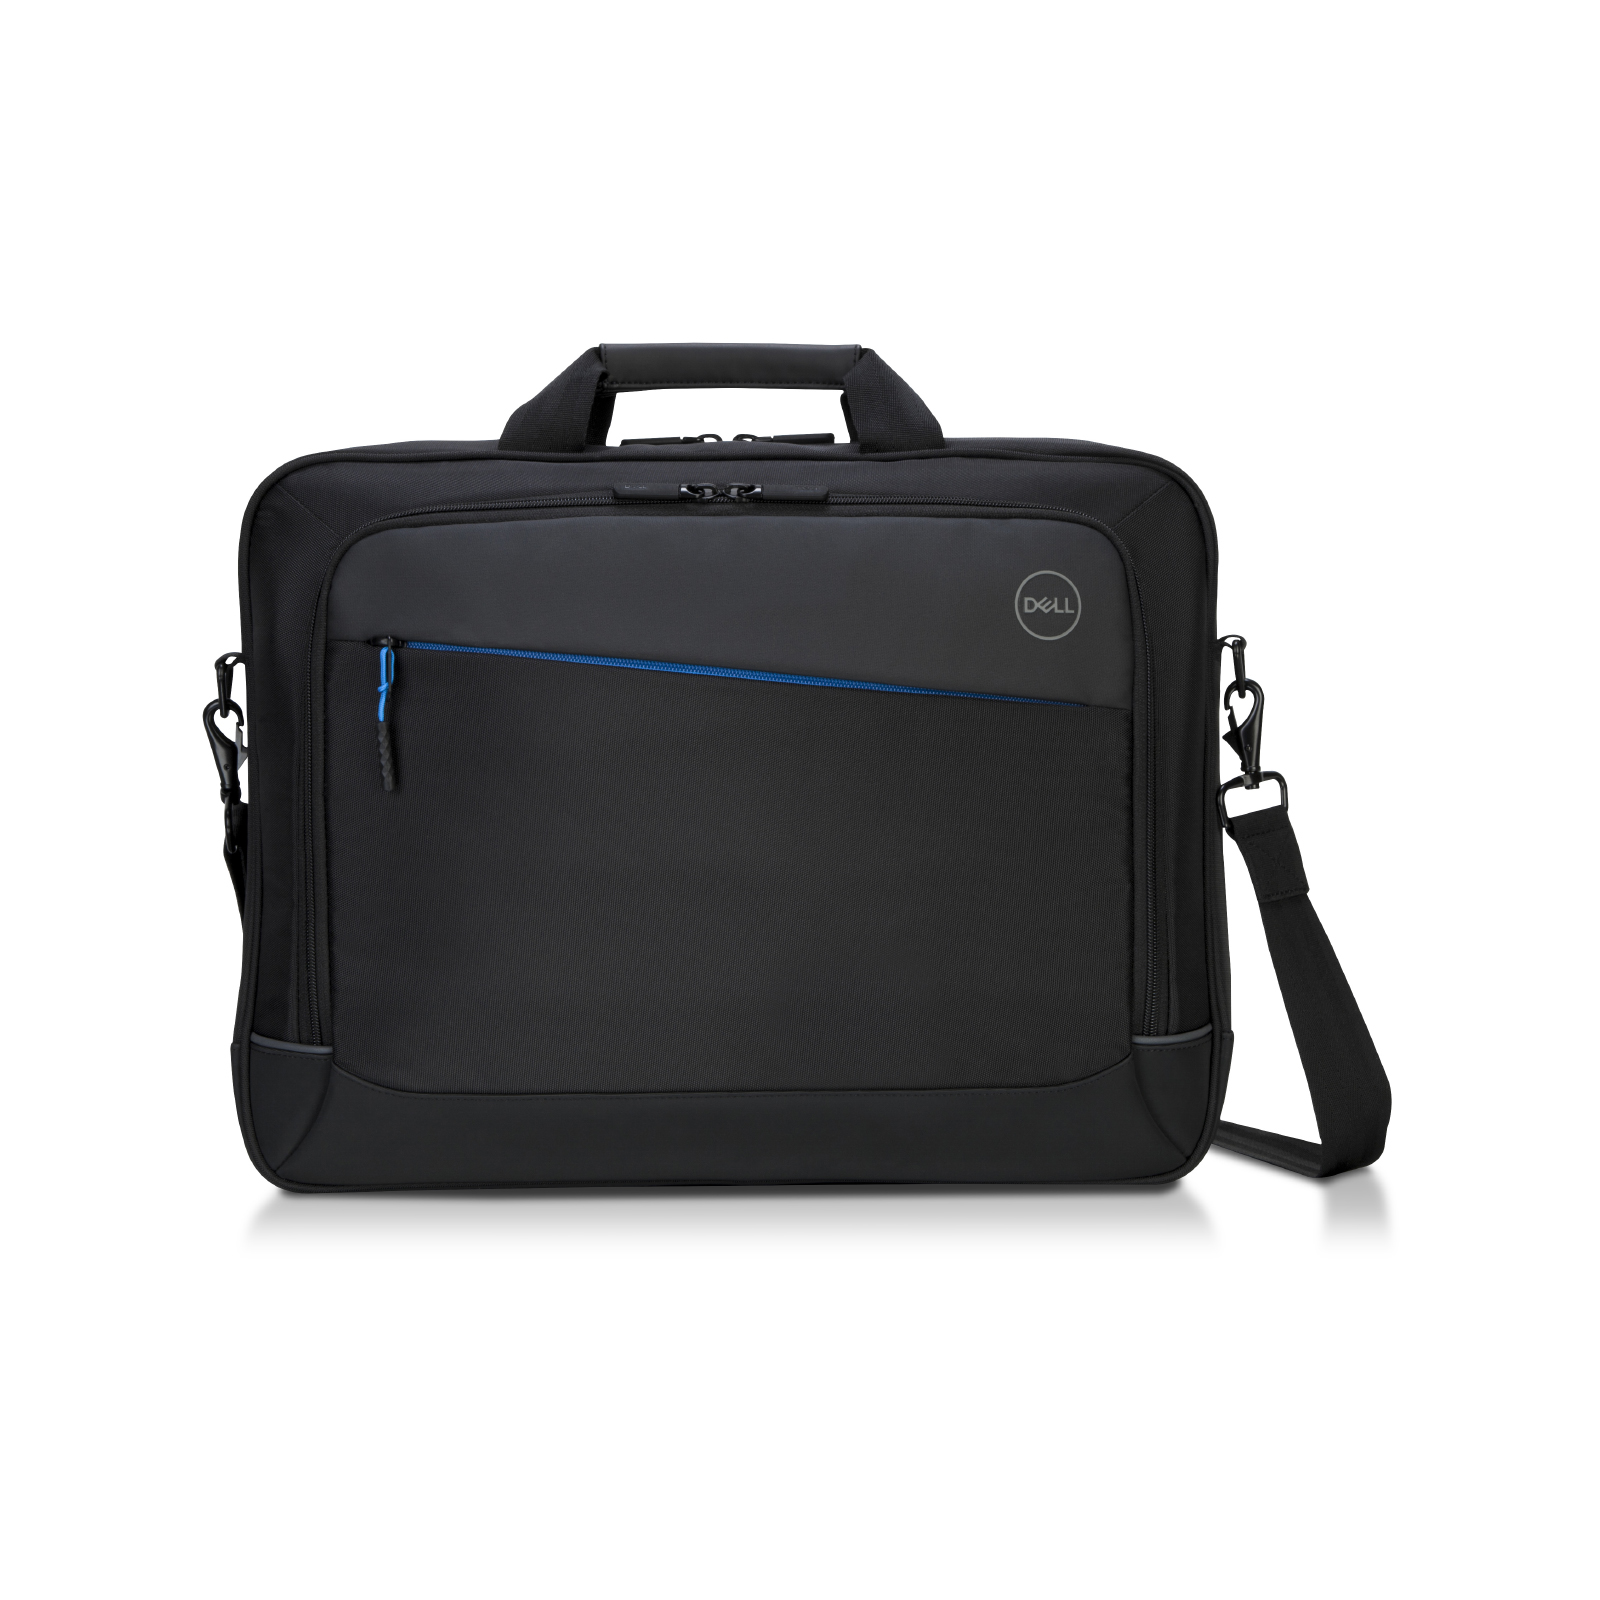 DELLCARRY CASE PROFESSIONAL BLACK 14 INCH 1 YEAR CARRY IN WARRANTY